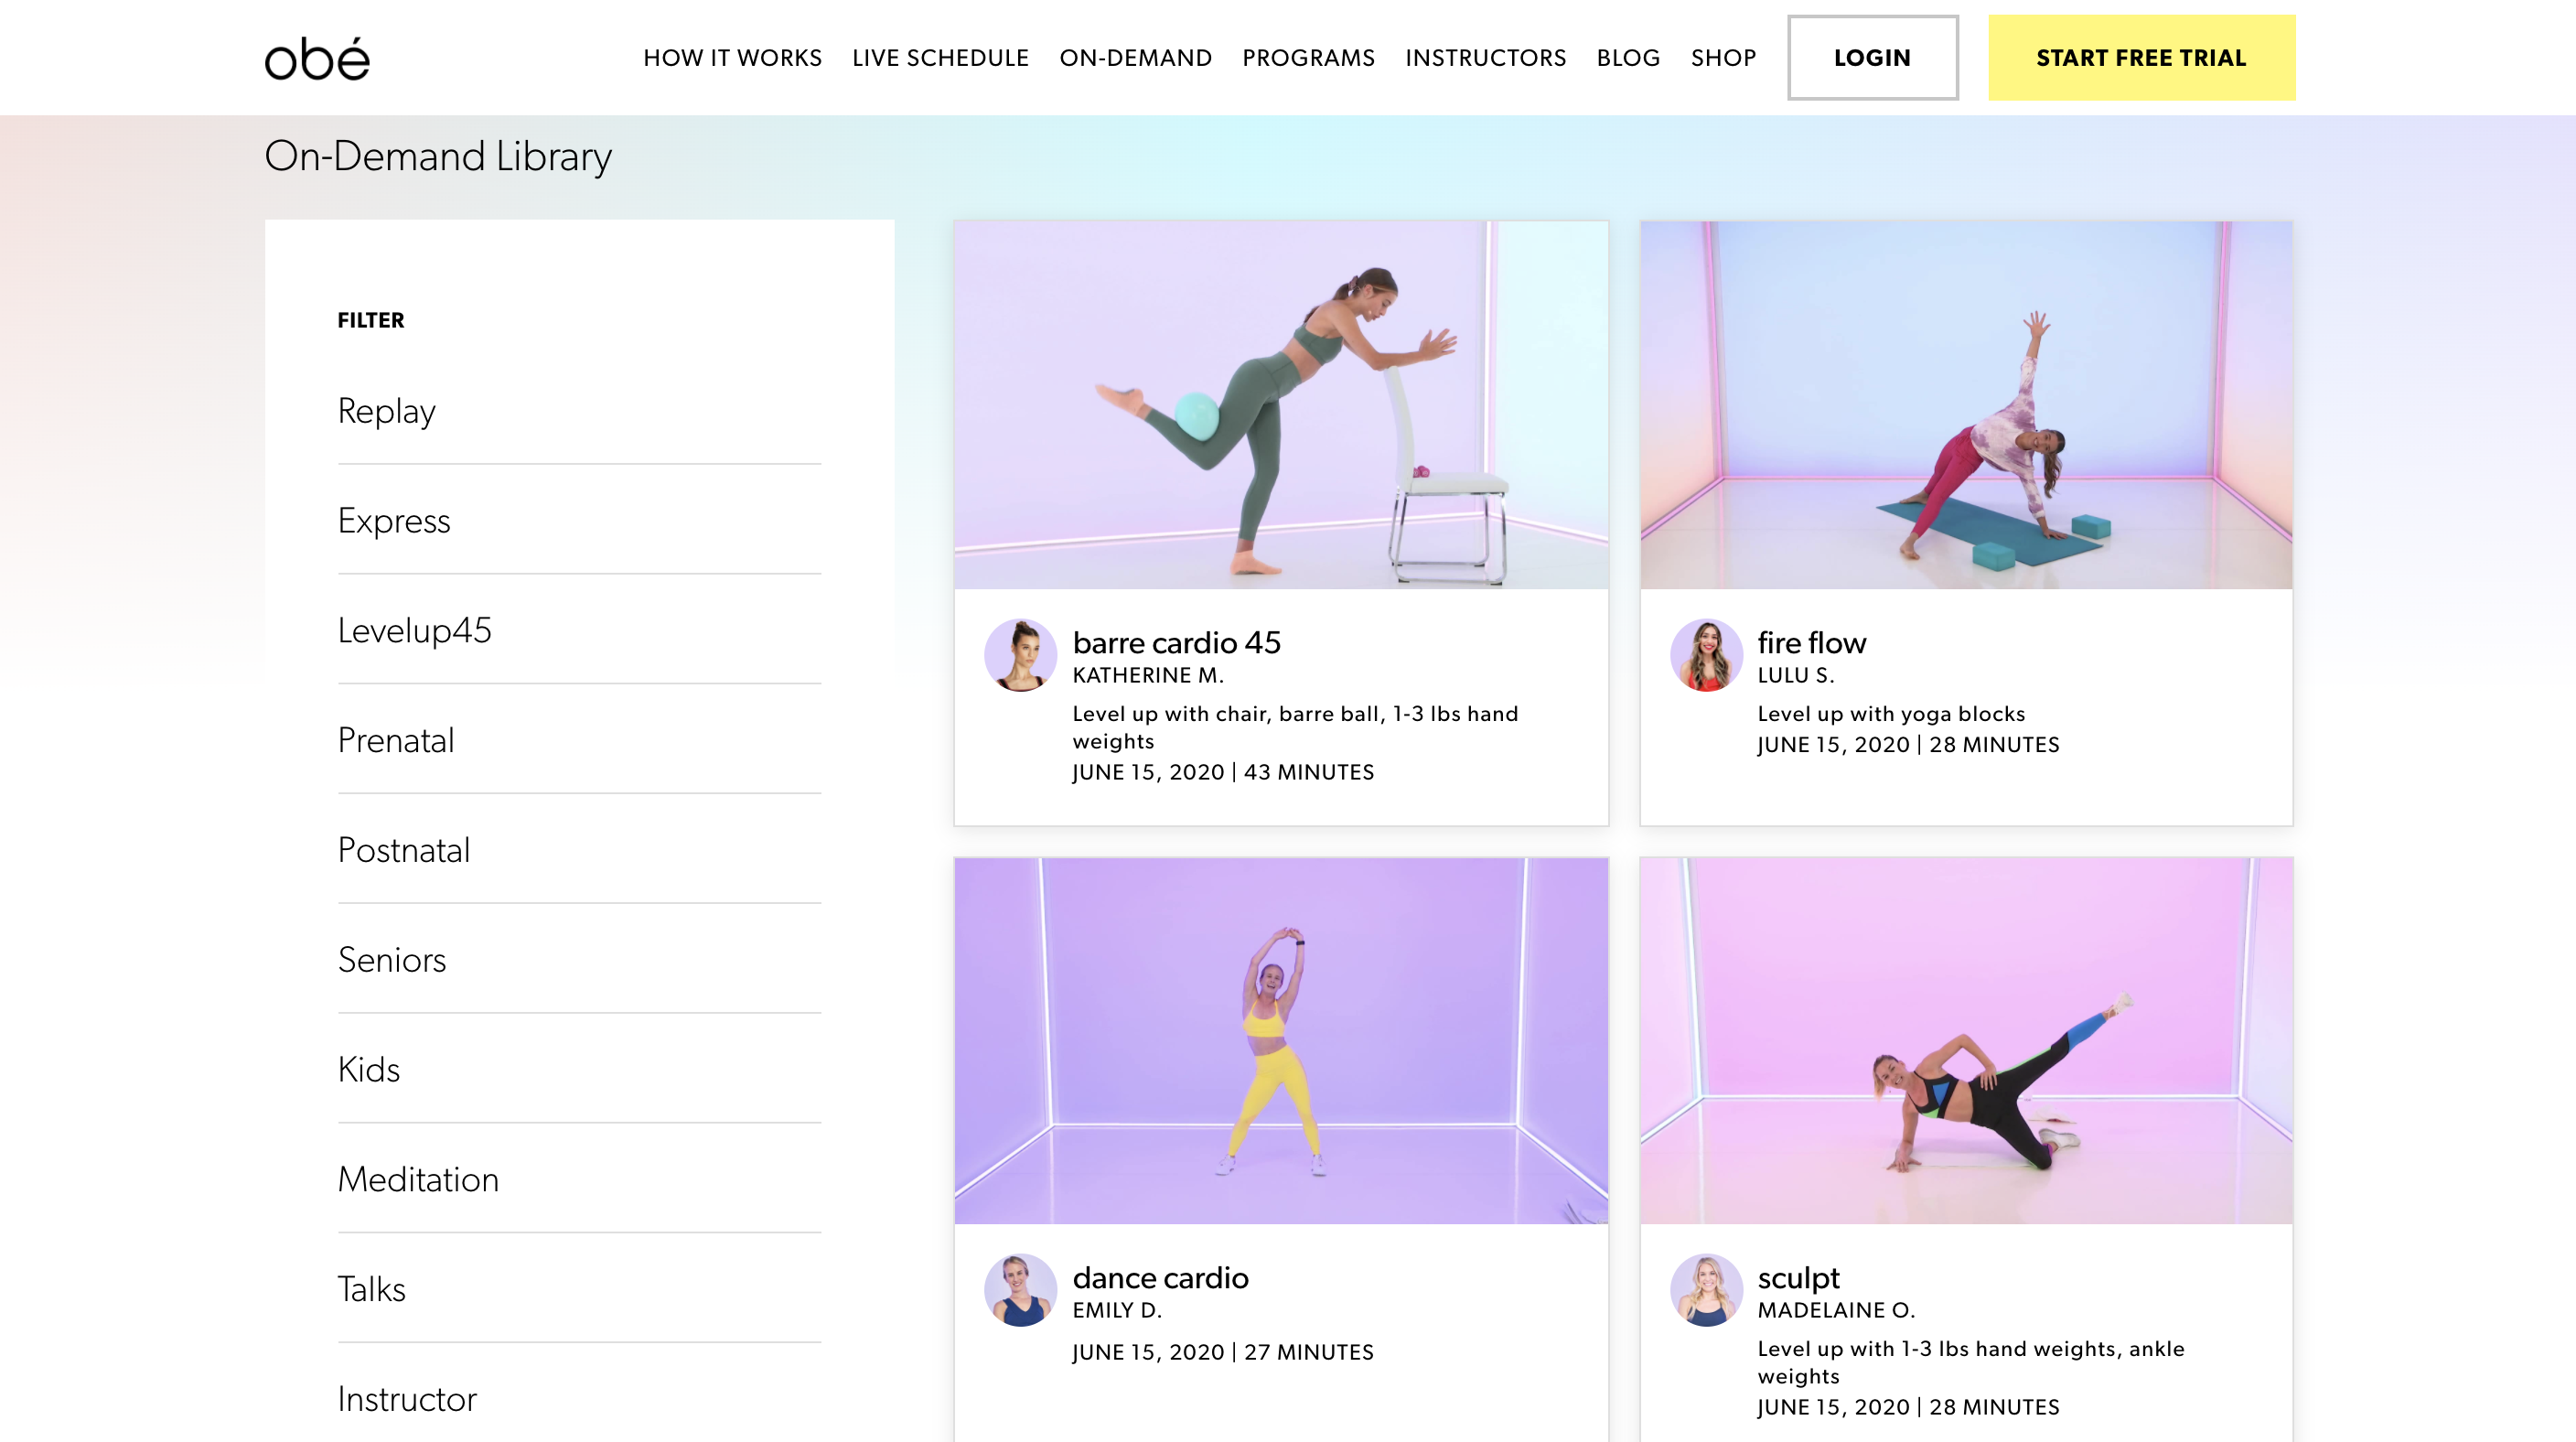 Screenshot of Obé Fitness' on-demand library with different on-demand express classes